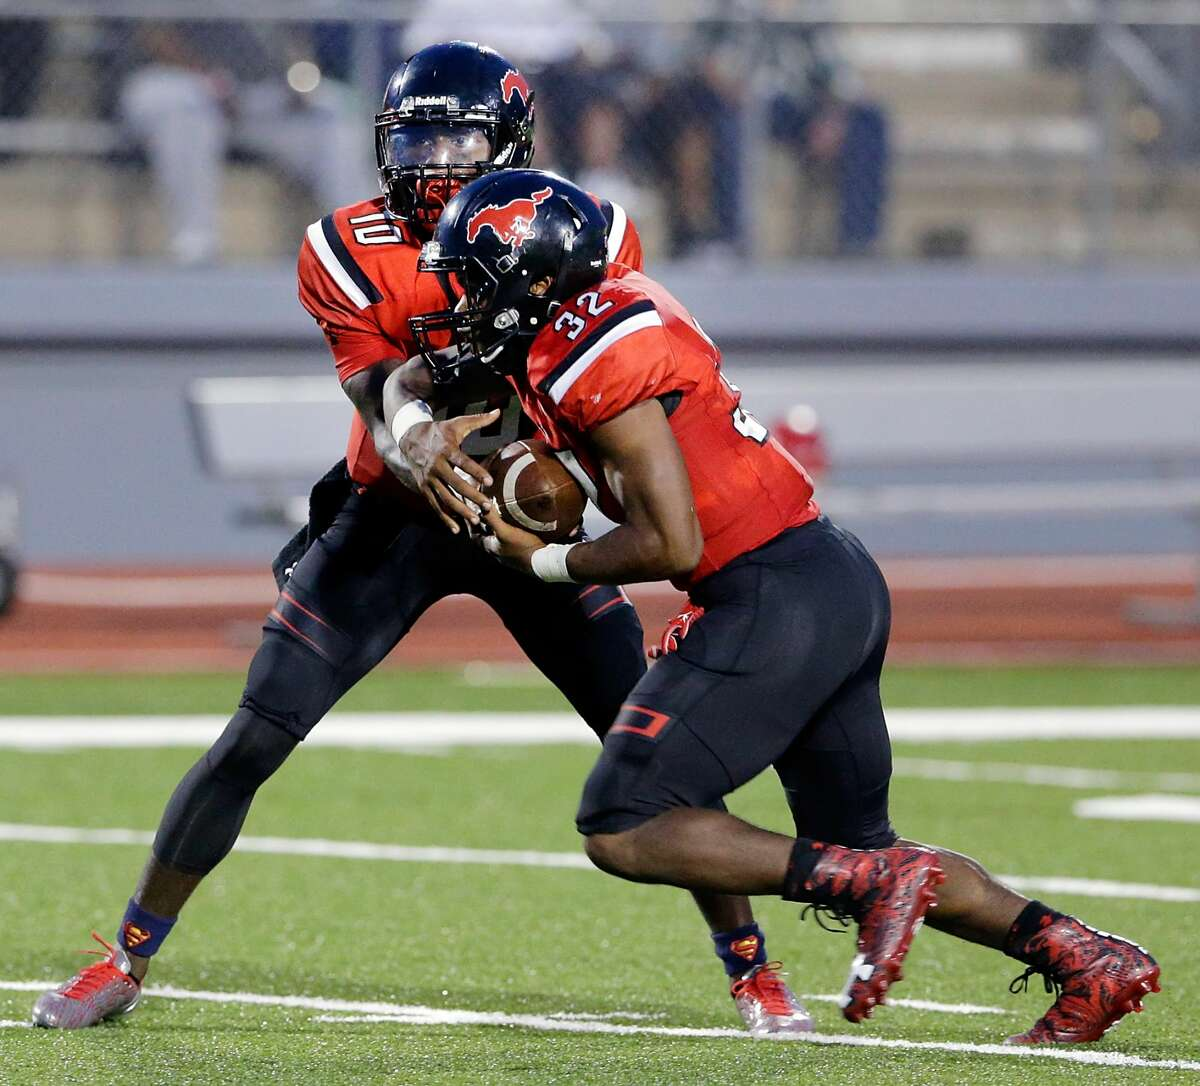 HOUSTON CHRONICLE HIGH SCHOOL FOOTBALL RANKINGS Class 6A 3. Westfield 1-0 (124, 1 first-place vote)